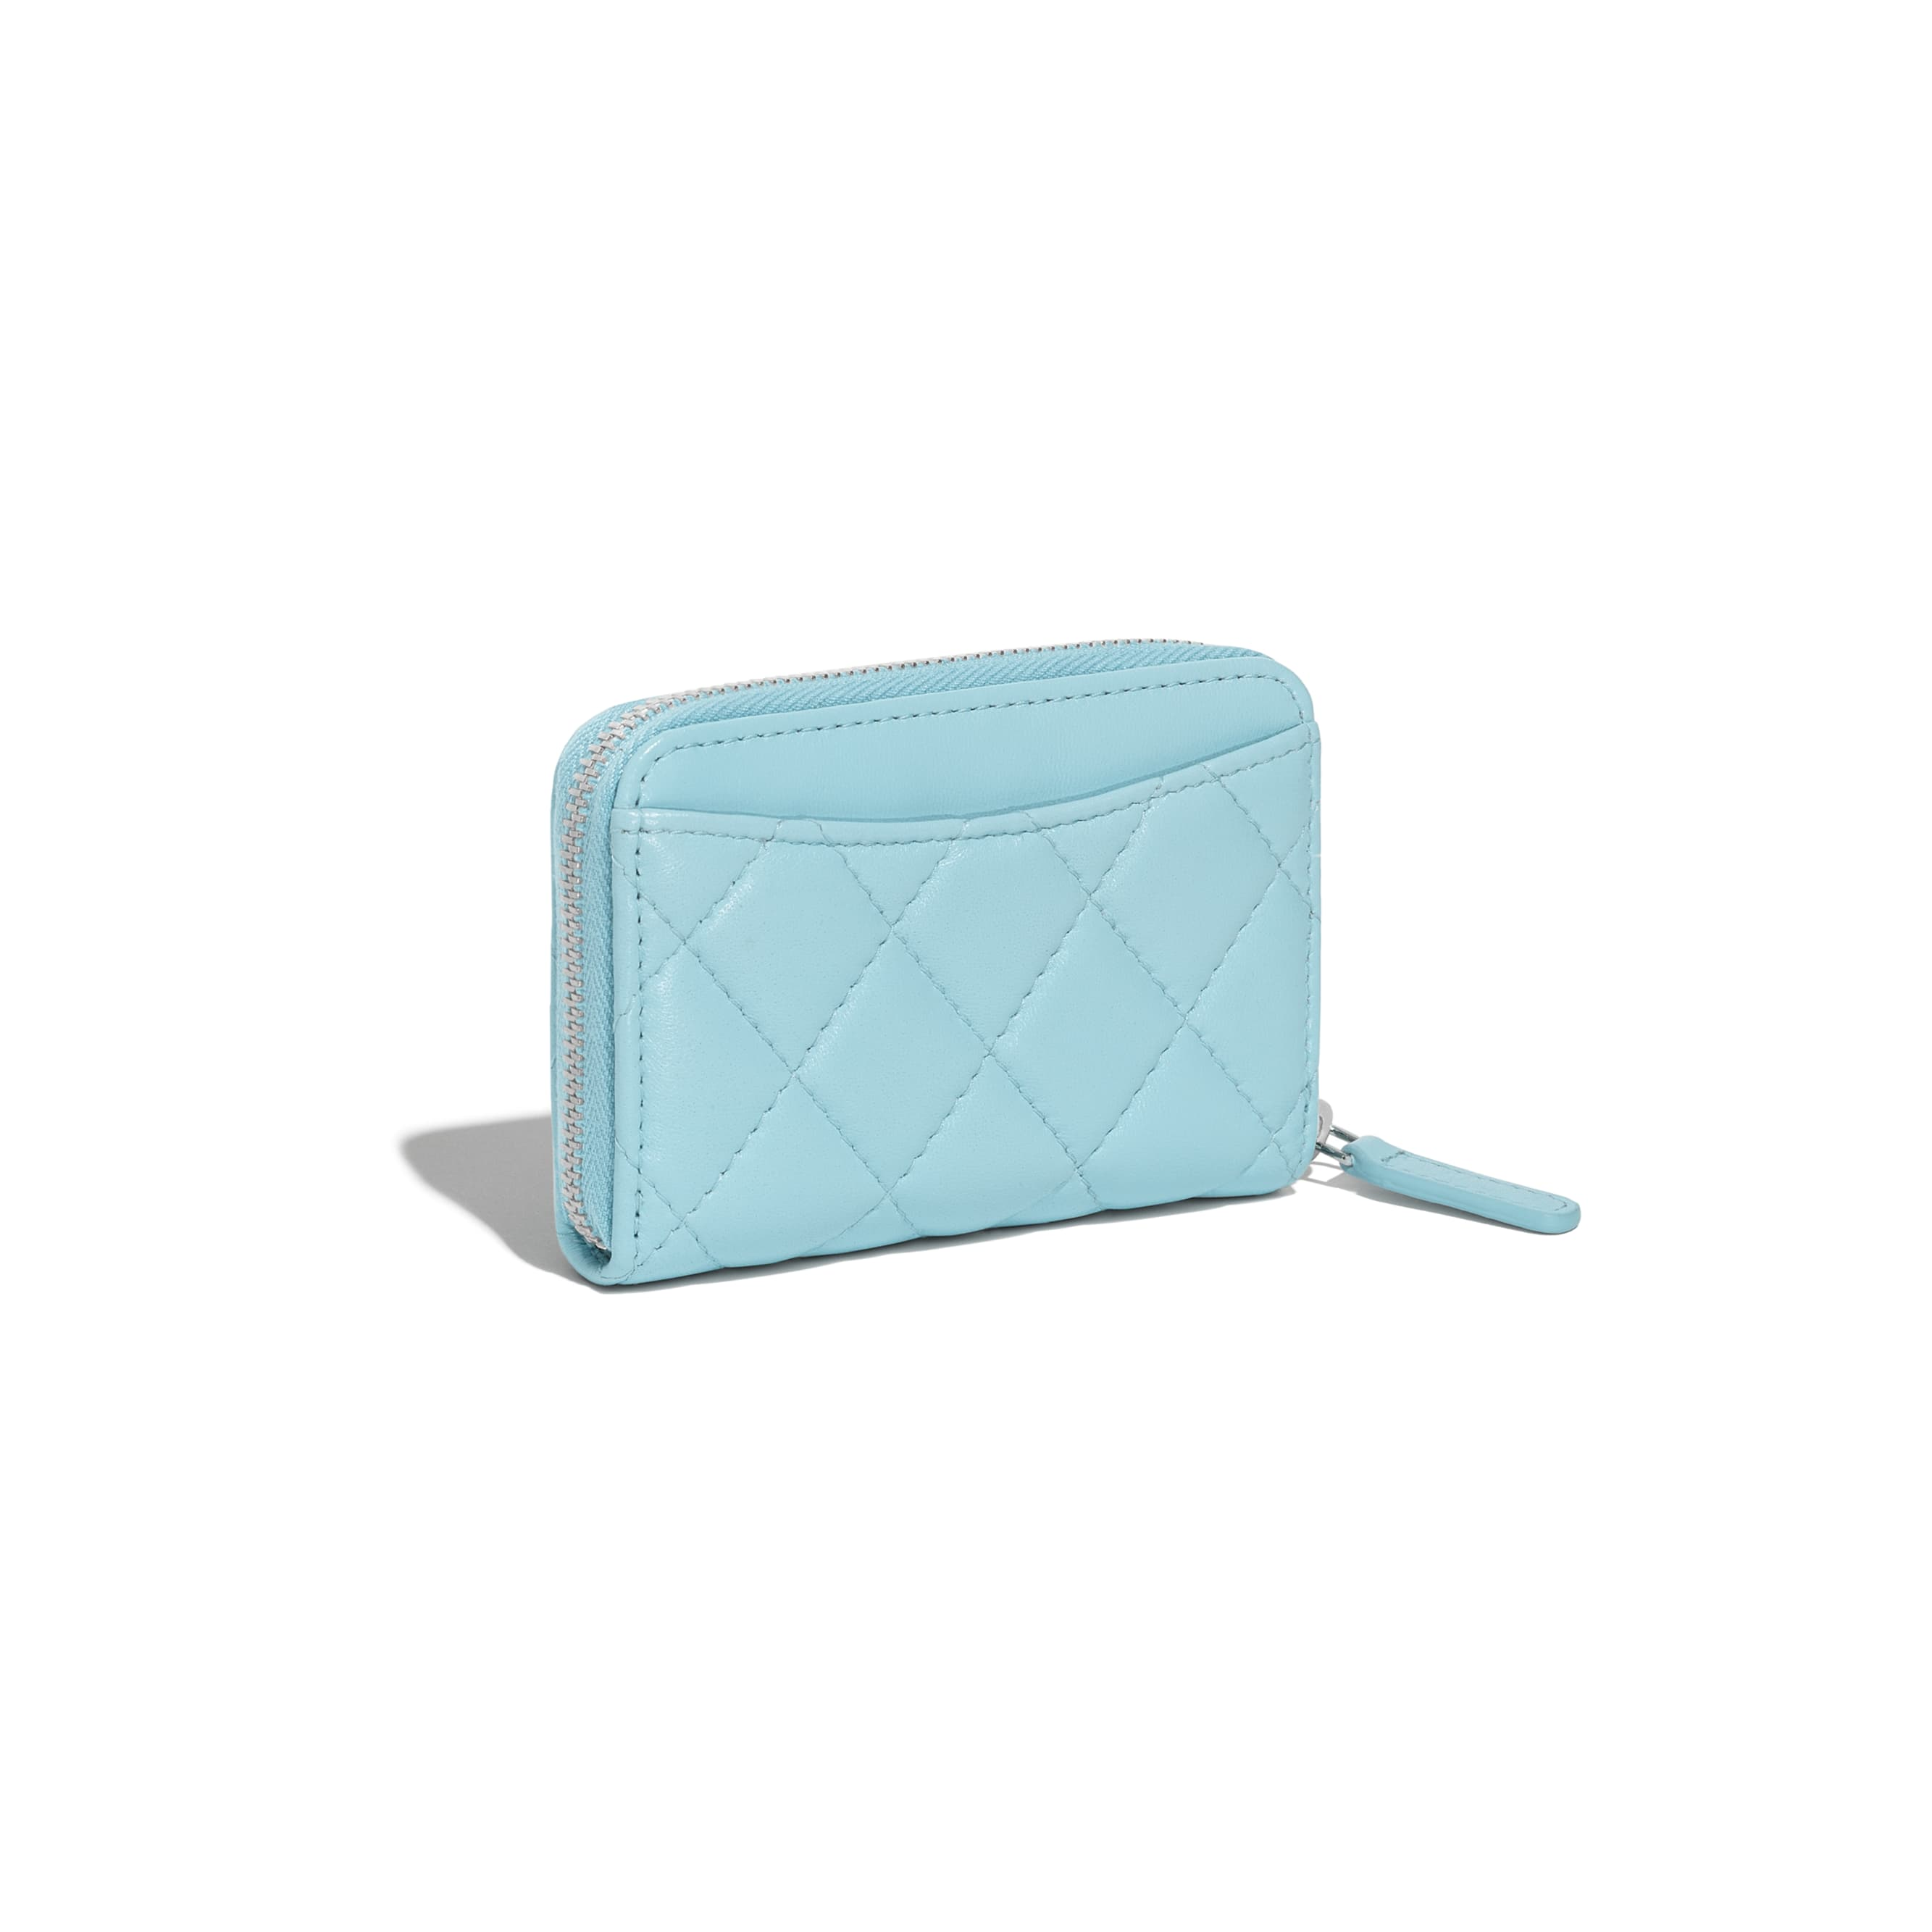 Classic Zipped Coin Purse - Neon Blue - Lambskin & Silver-Tone Metal - CHANEL - Extra view - see standard sized version